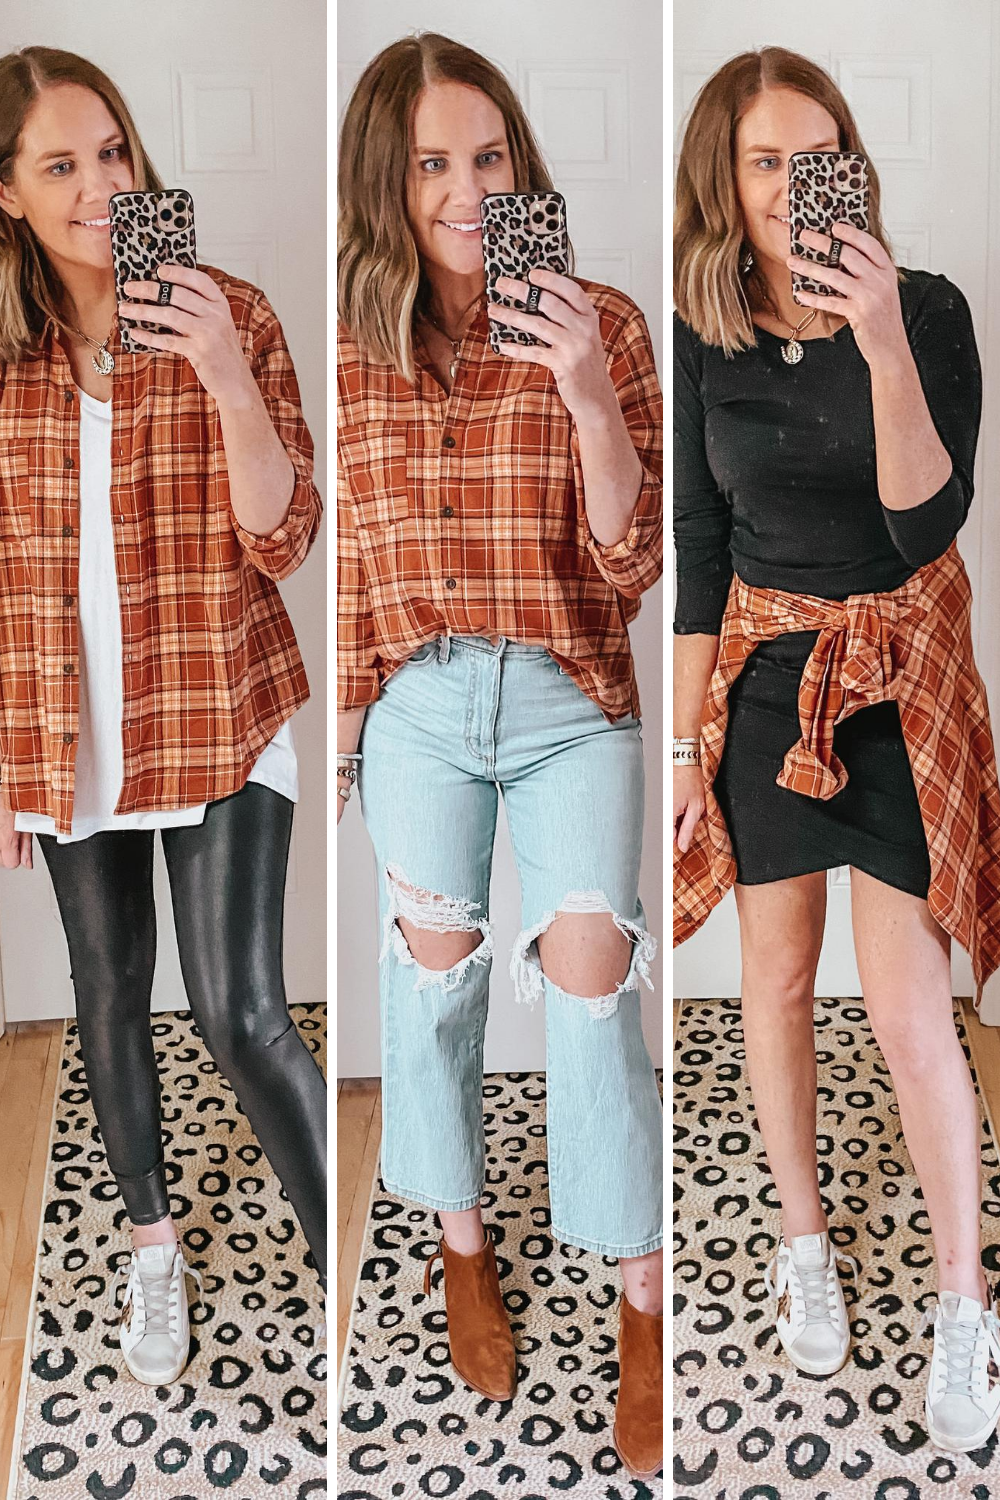 cute-casual-fall-outfits-from-Target-3-ways-to-style-a-plaid-flannel